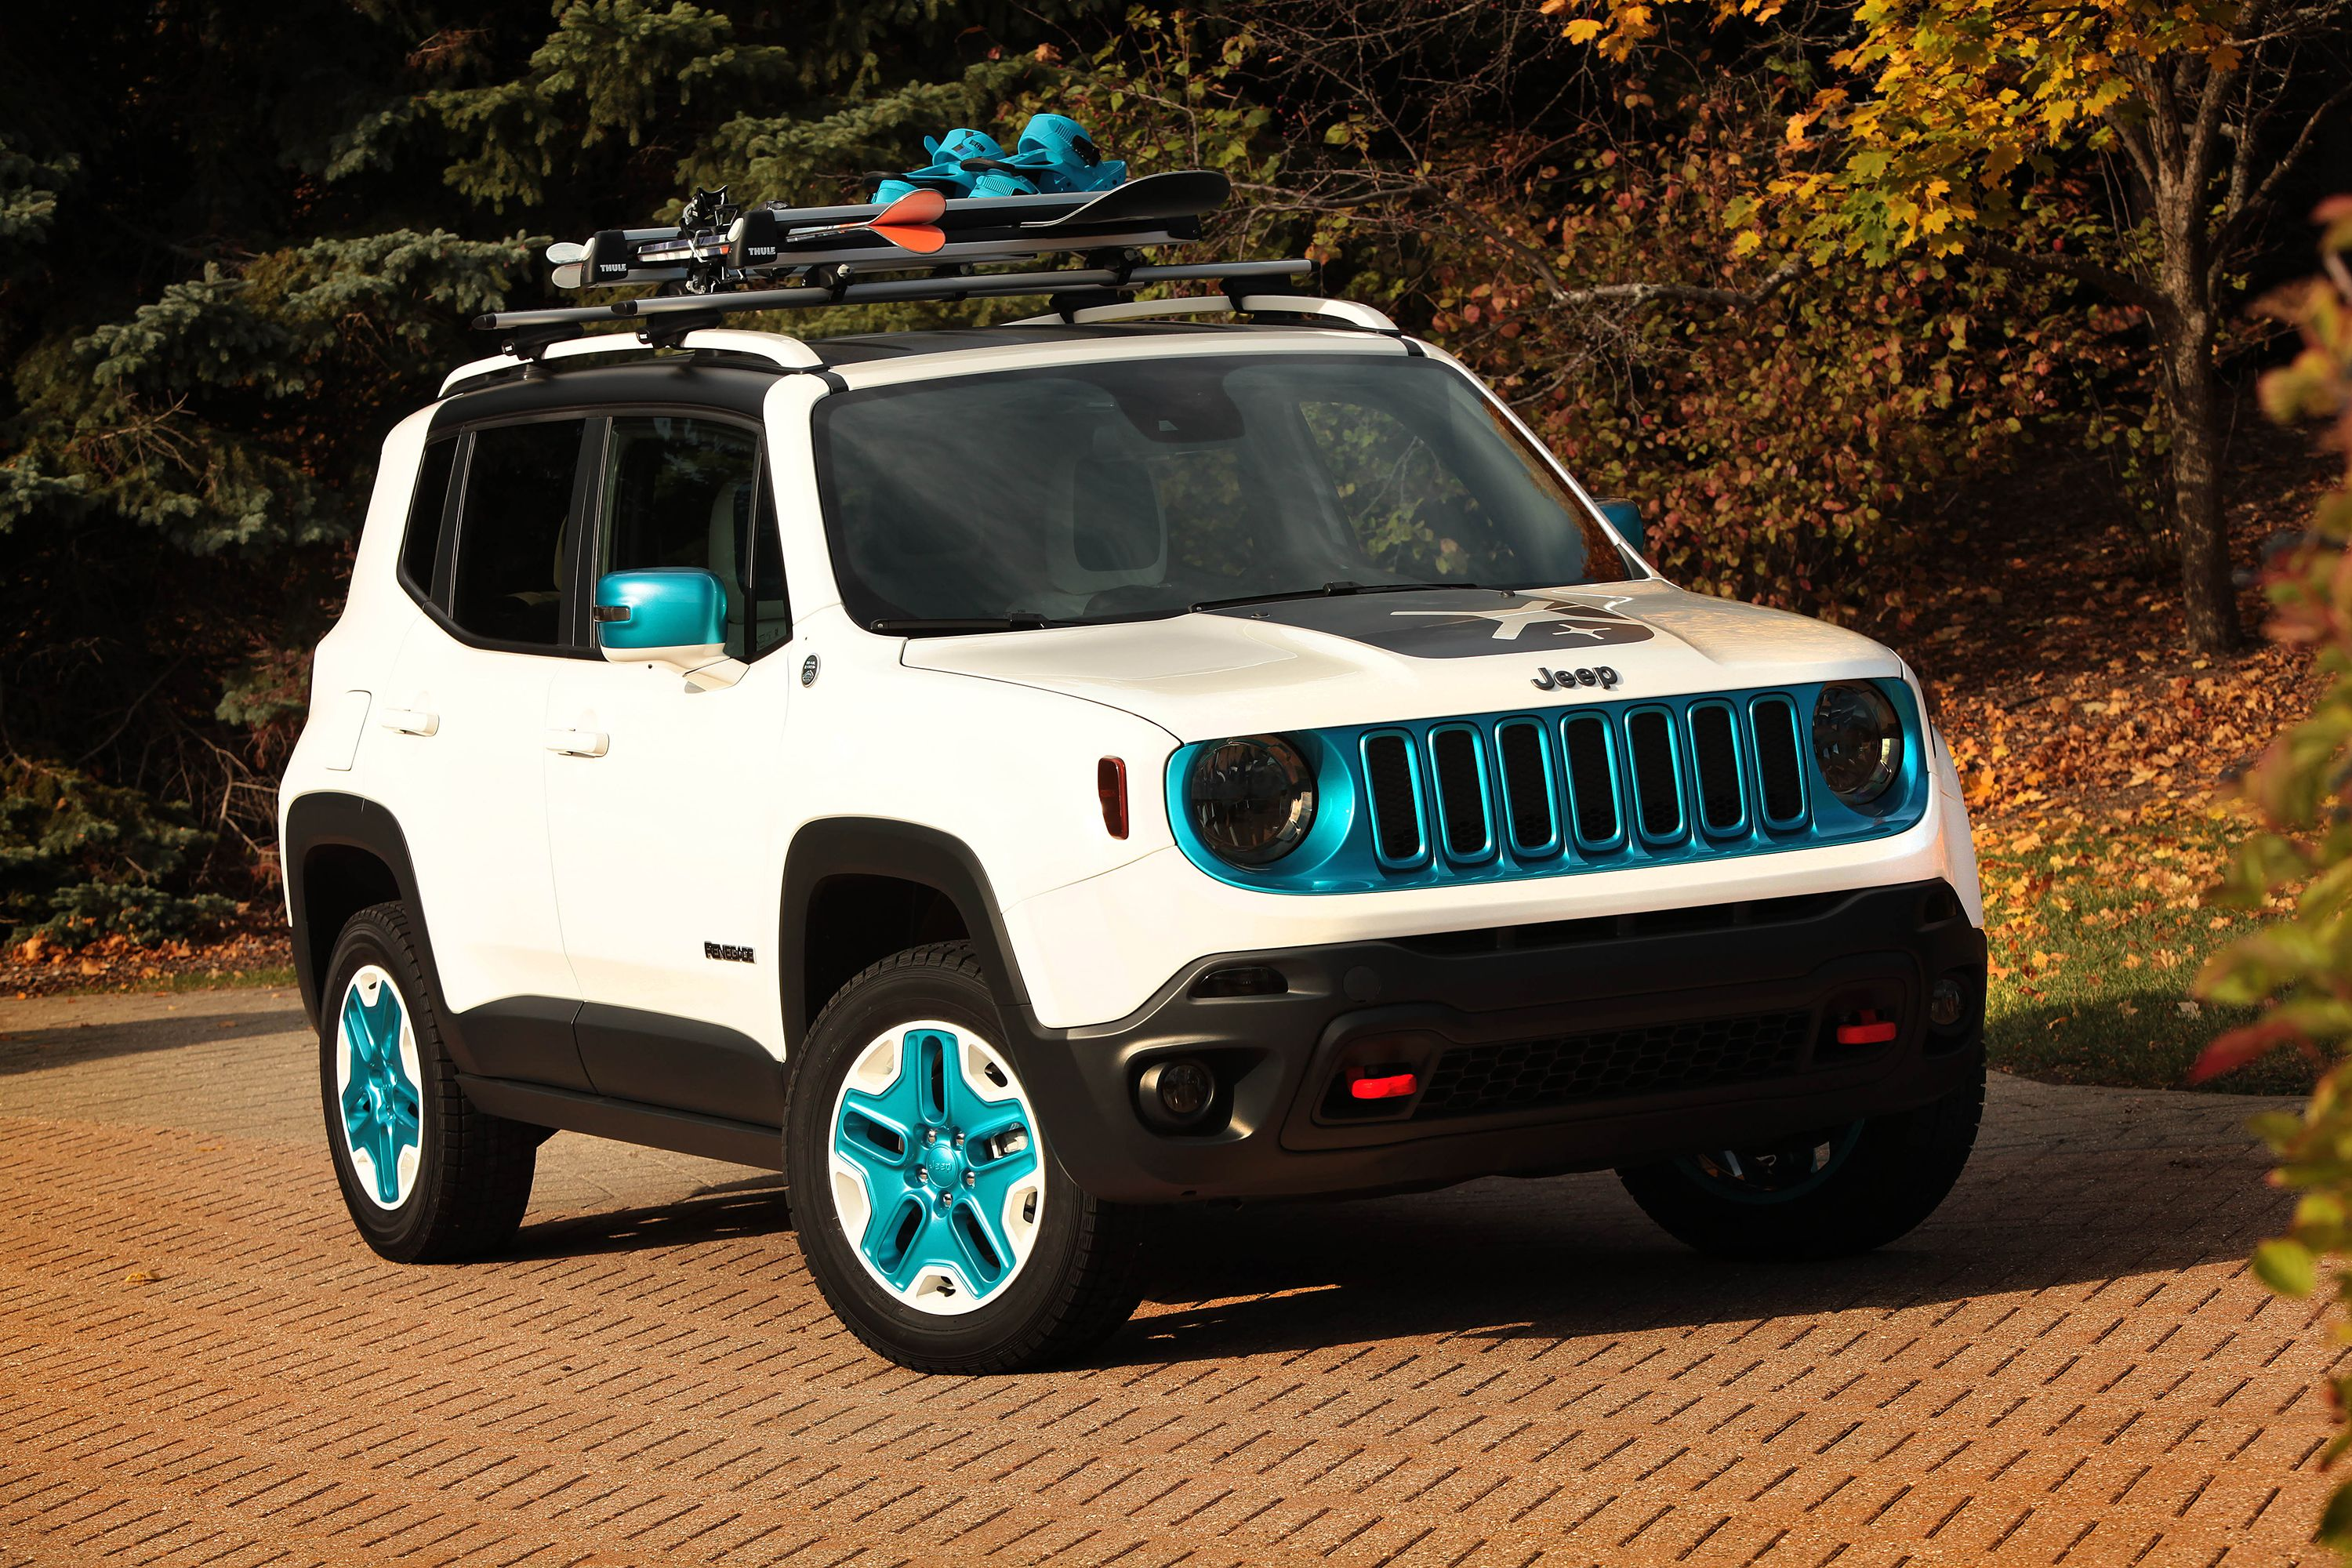 nerd are jeep on but trailhawk same kind at img looks part days it time jeeps hooks from cute the all functional of classic review renegade by two gone has tow front